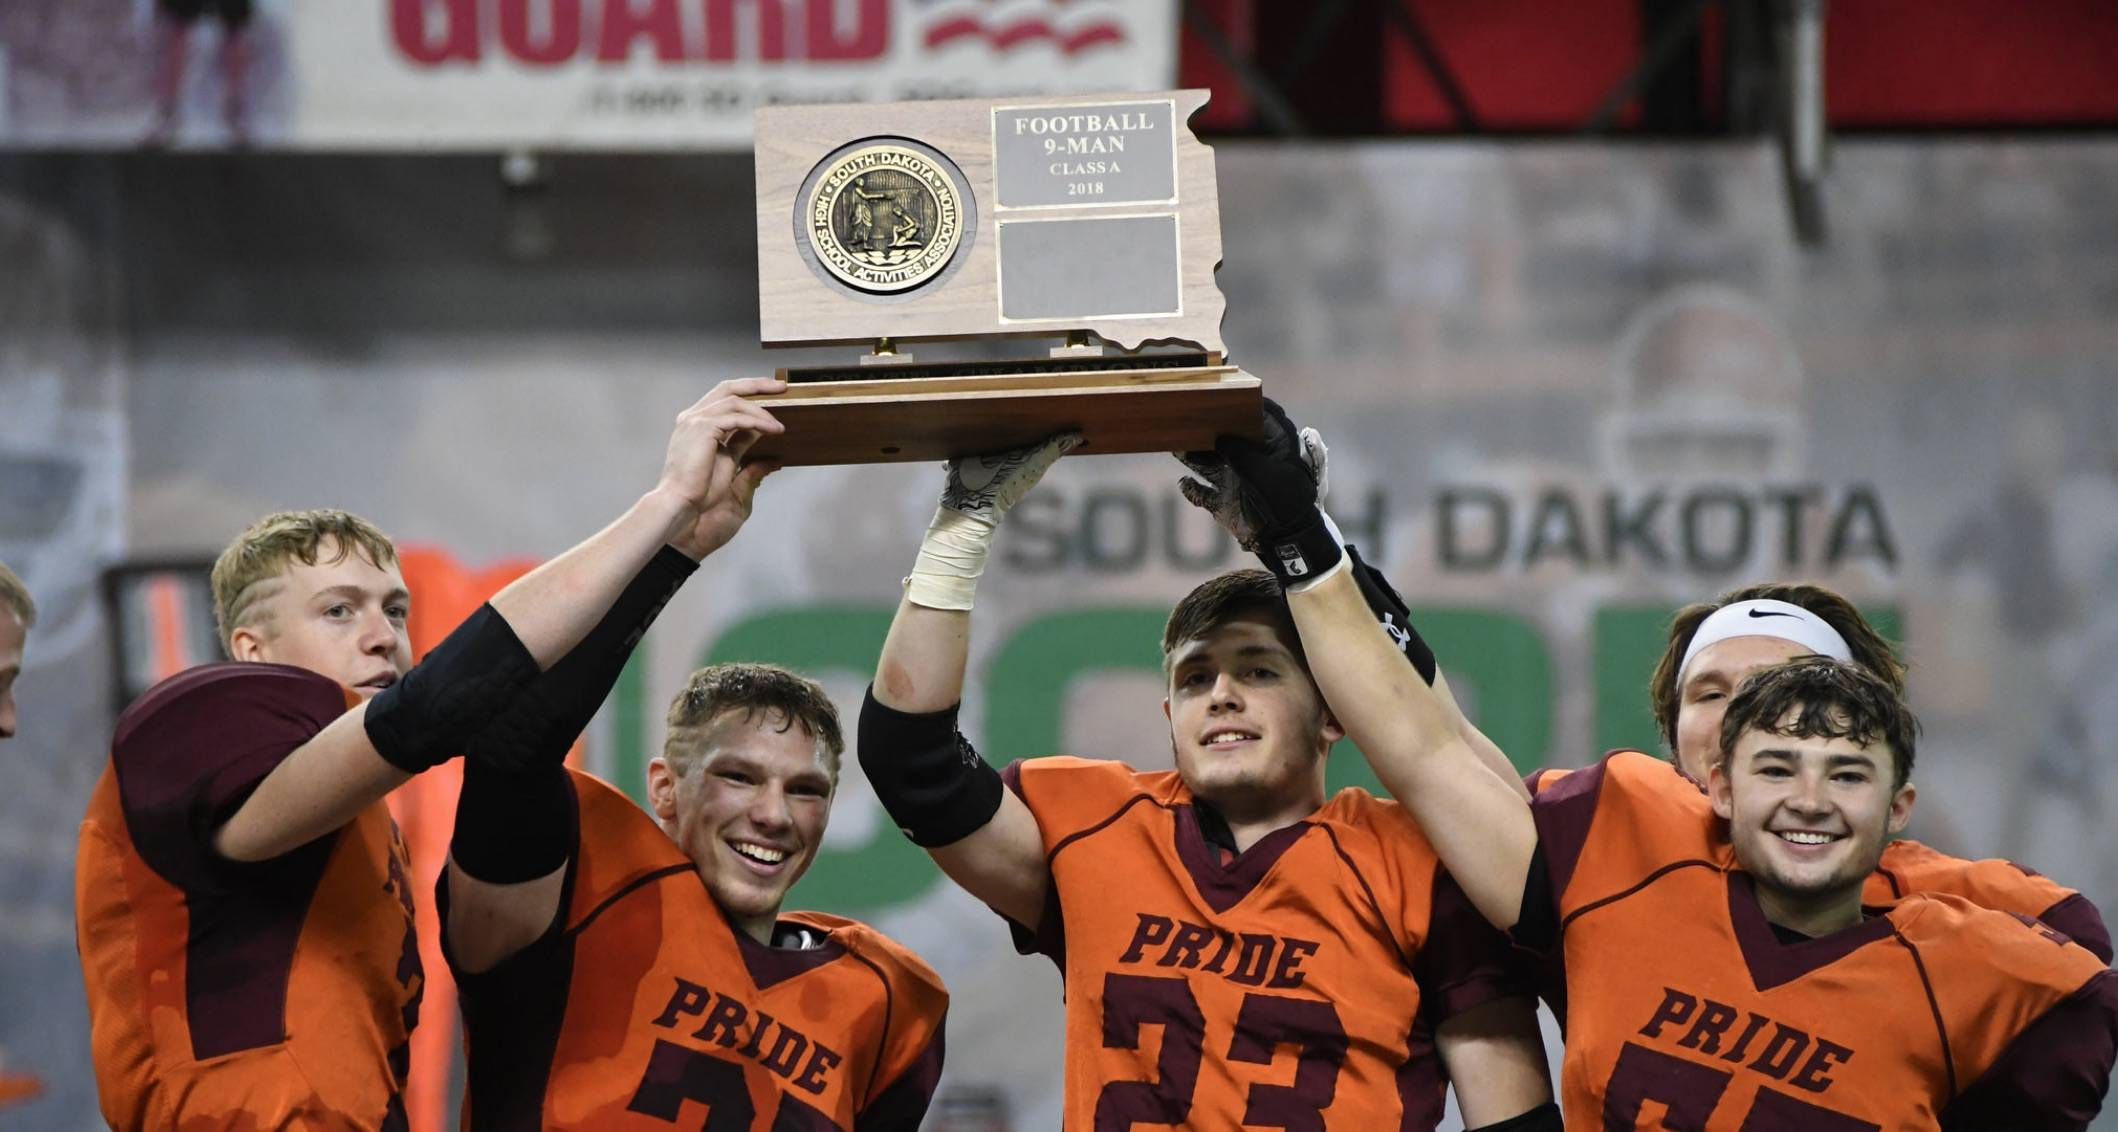 HS football players holding state title